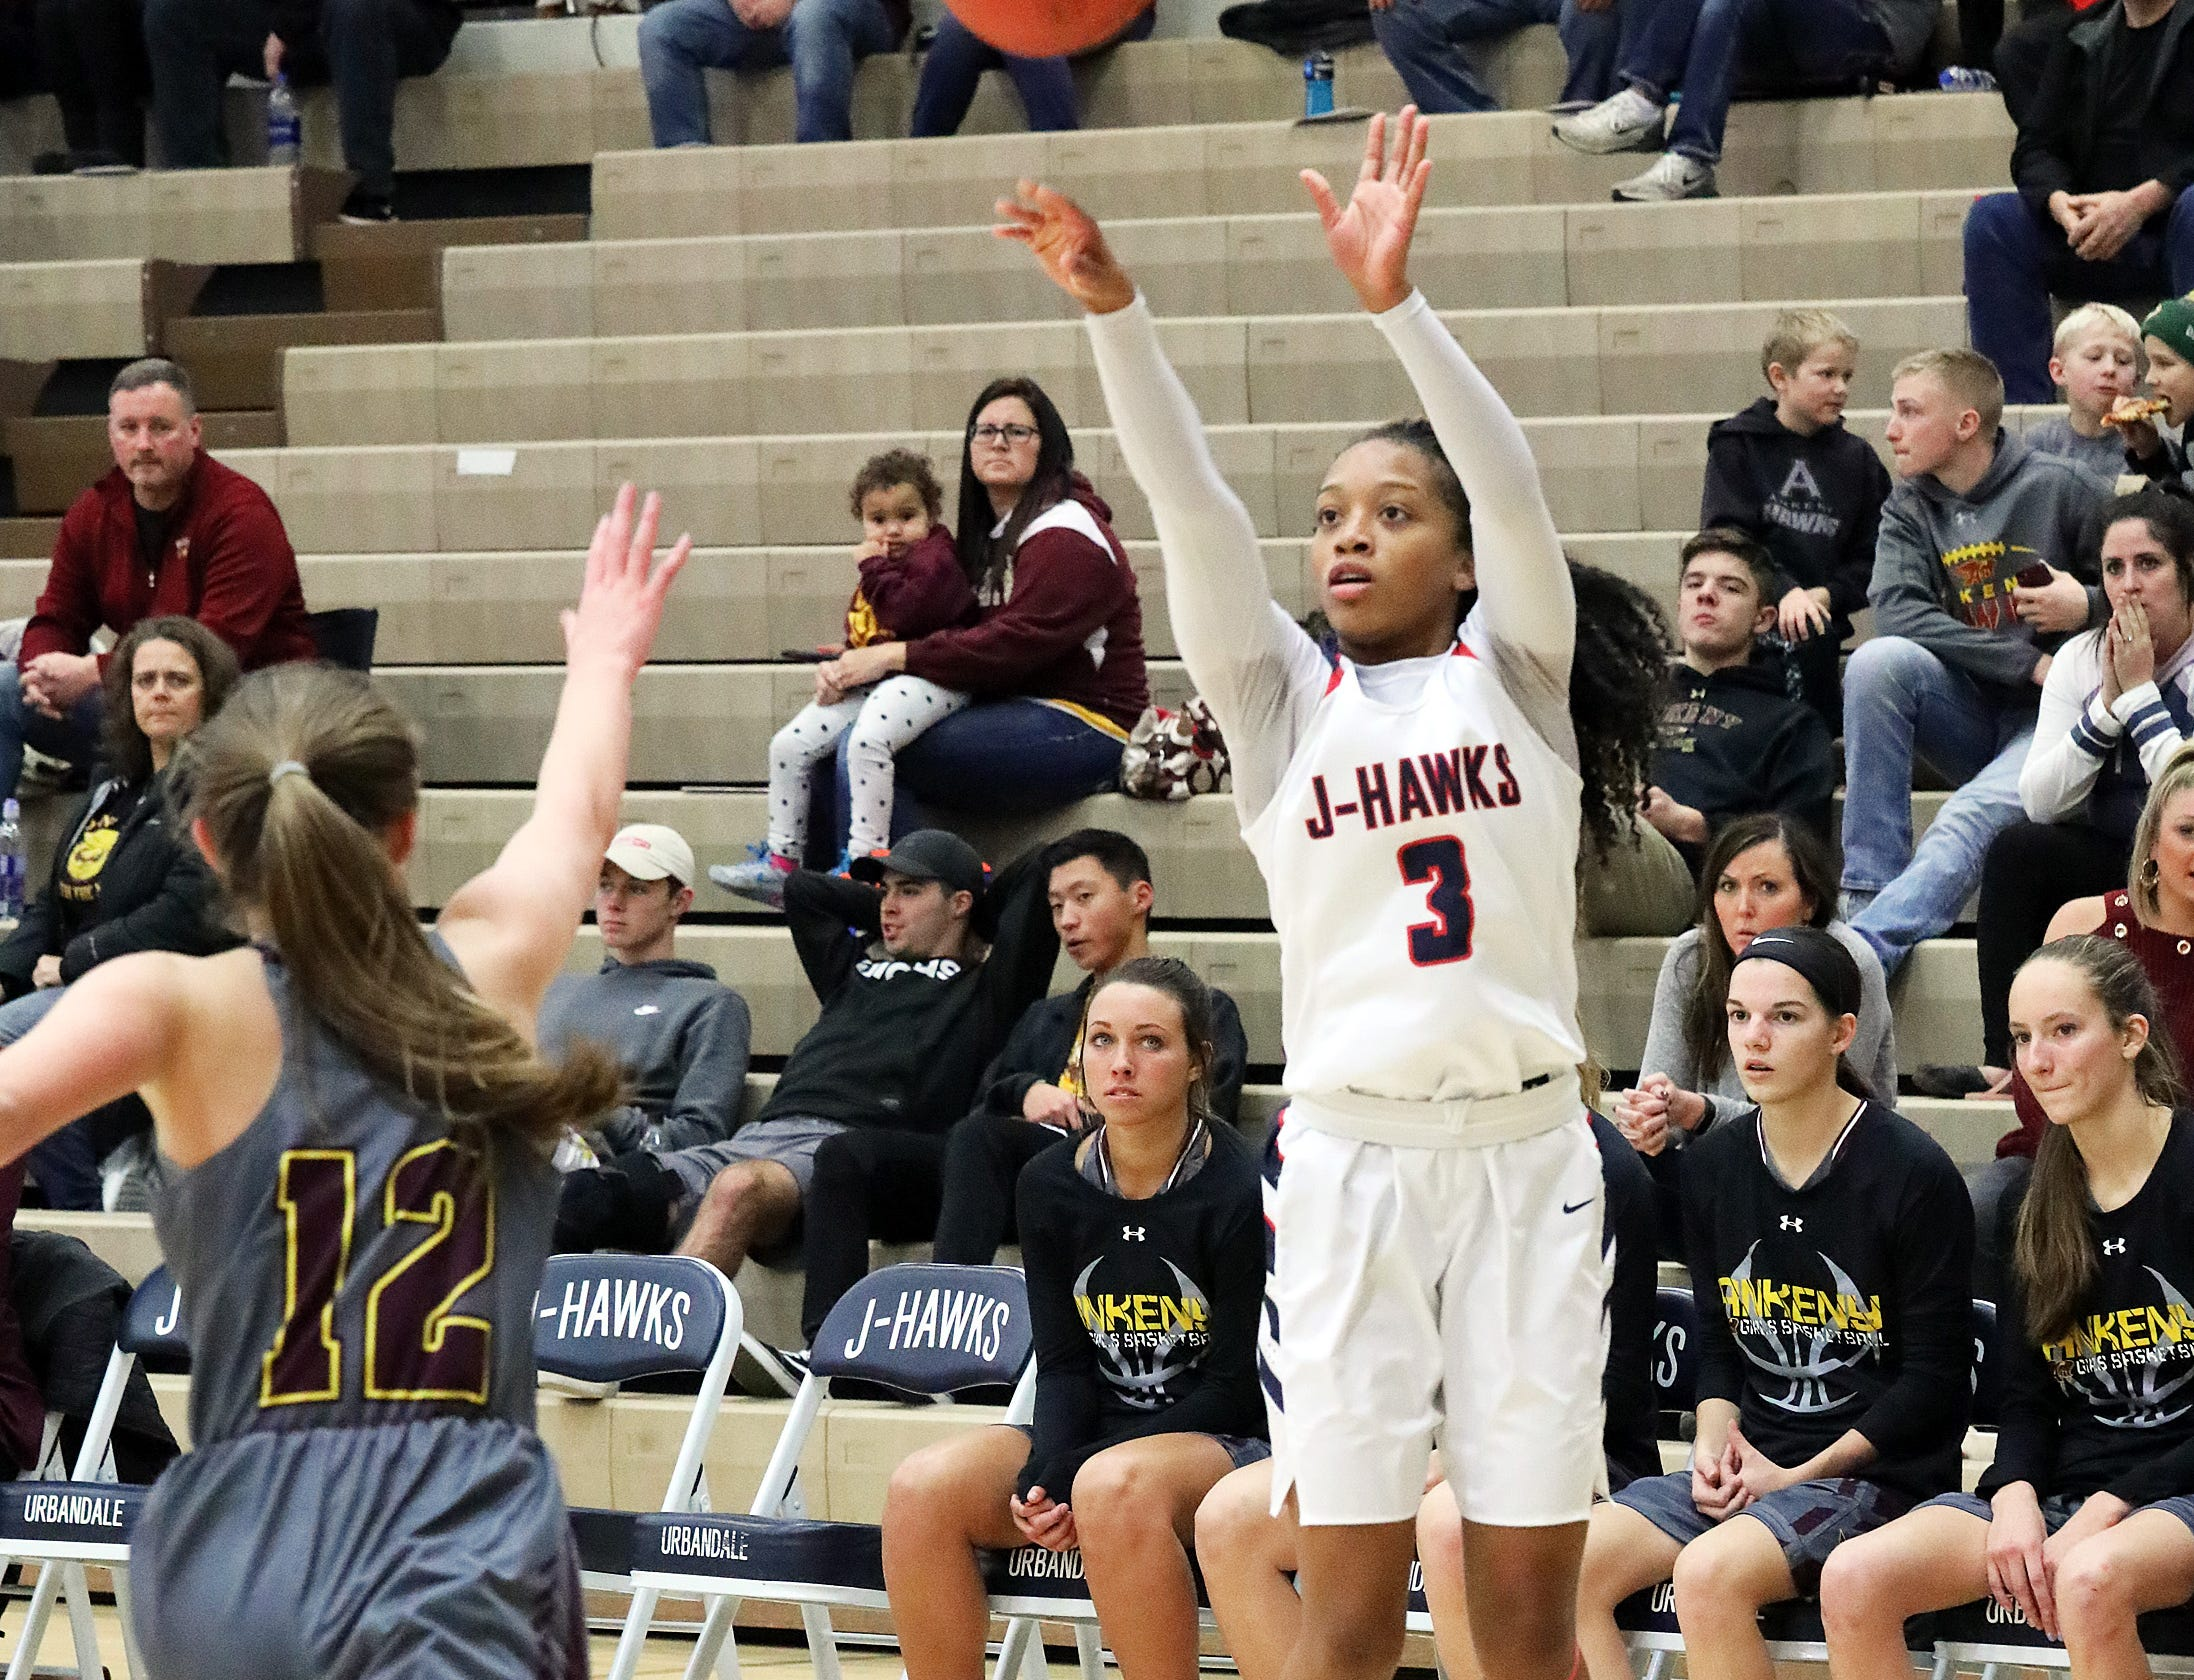 Urbandale senior guard Dee Dee Pryor hits a 3-pointer as the Ankeny Hawkettes compete against the Urbandale J-Hawks in high school basketball on Friday, Dec. 14, 2018 at Urbandale High School. Ankeny won 46 to 40.